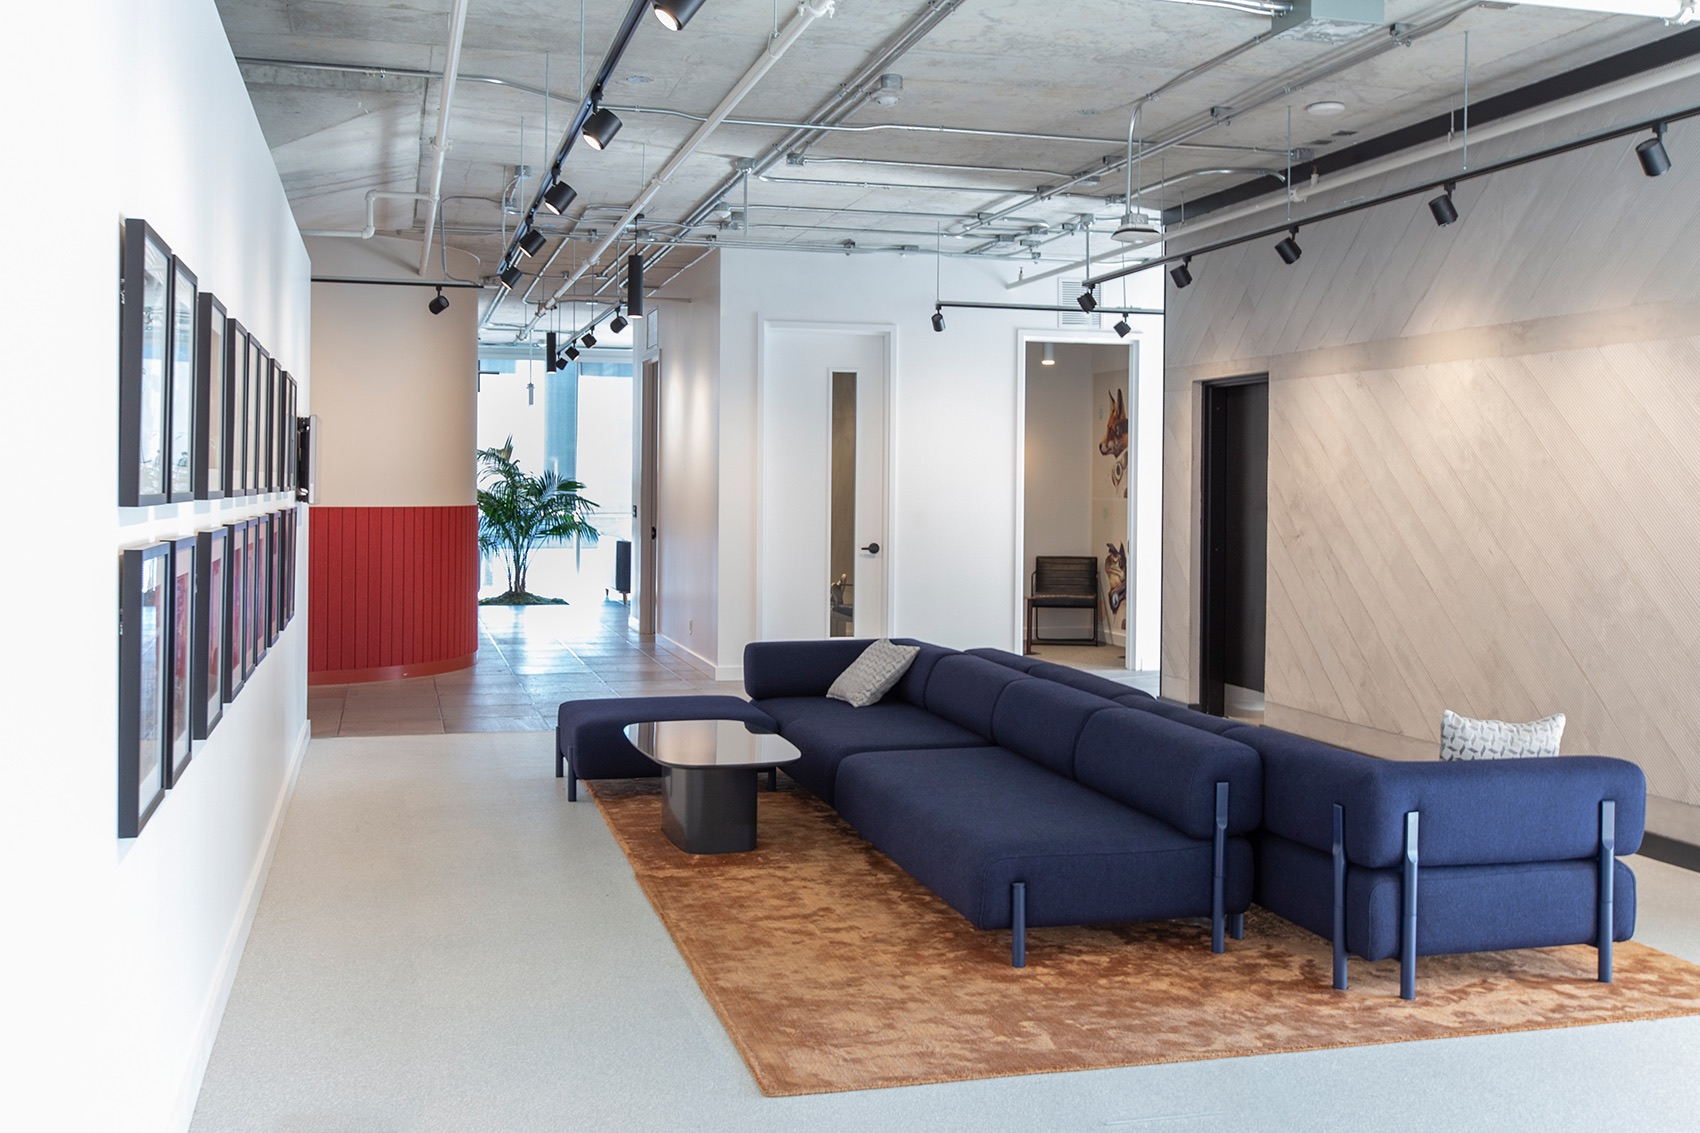 shopify-toronto-office-17